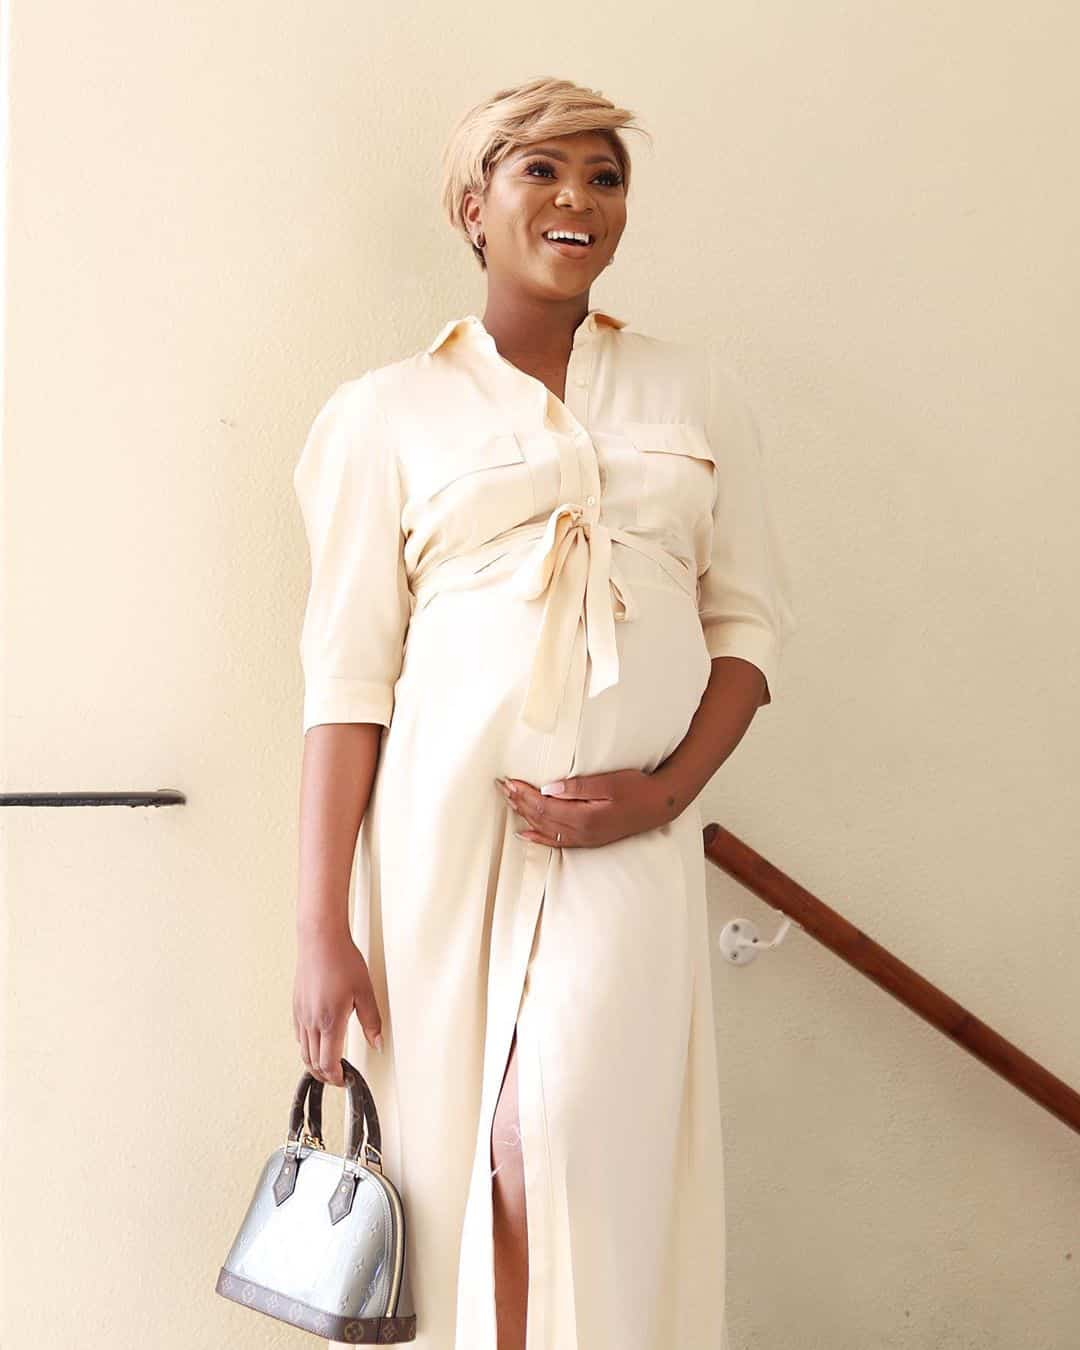 Stephanie Coker reveals she had her baby through IVF  (video)